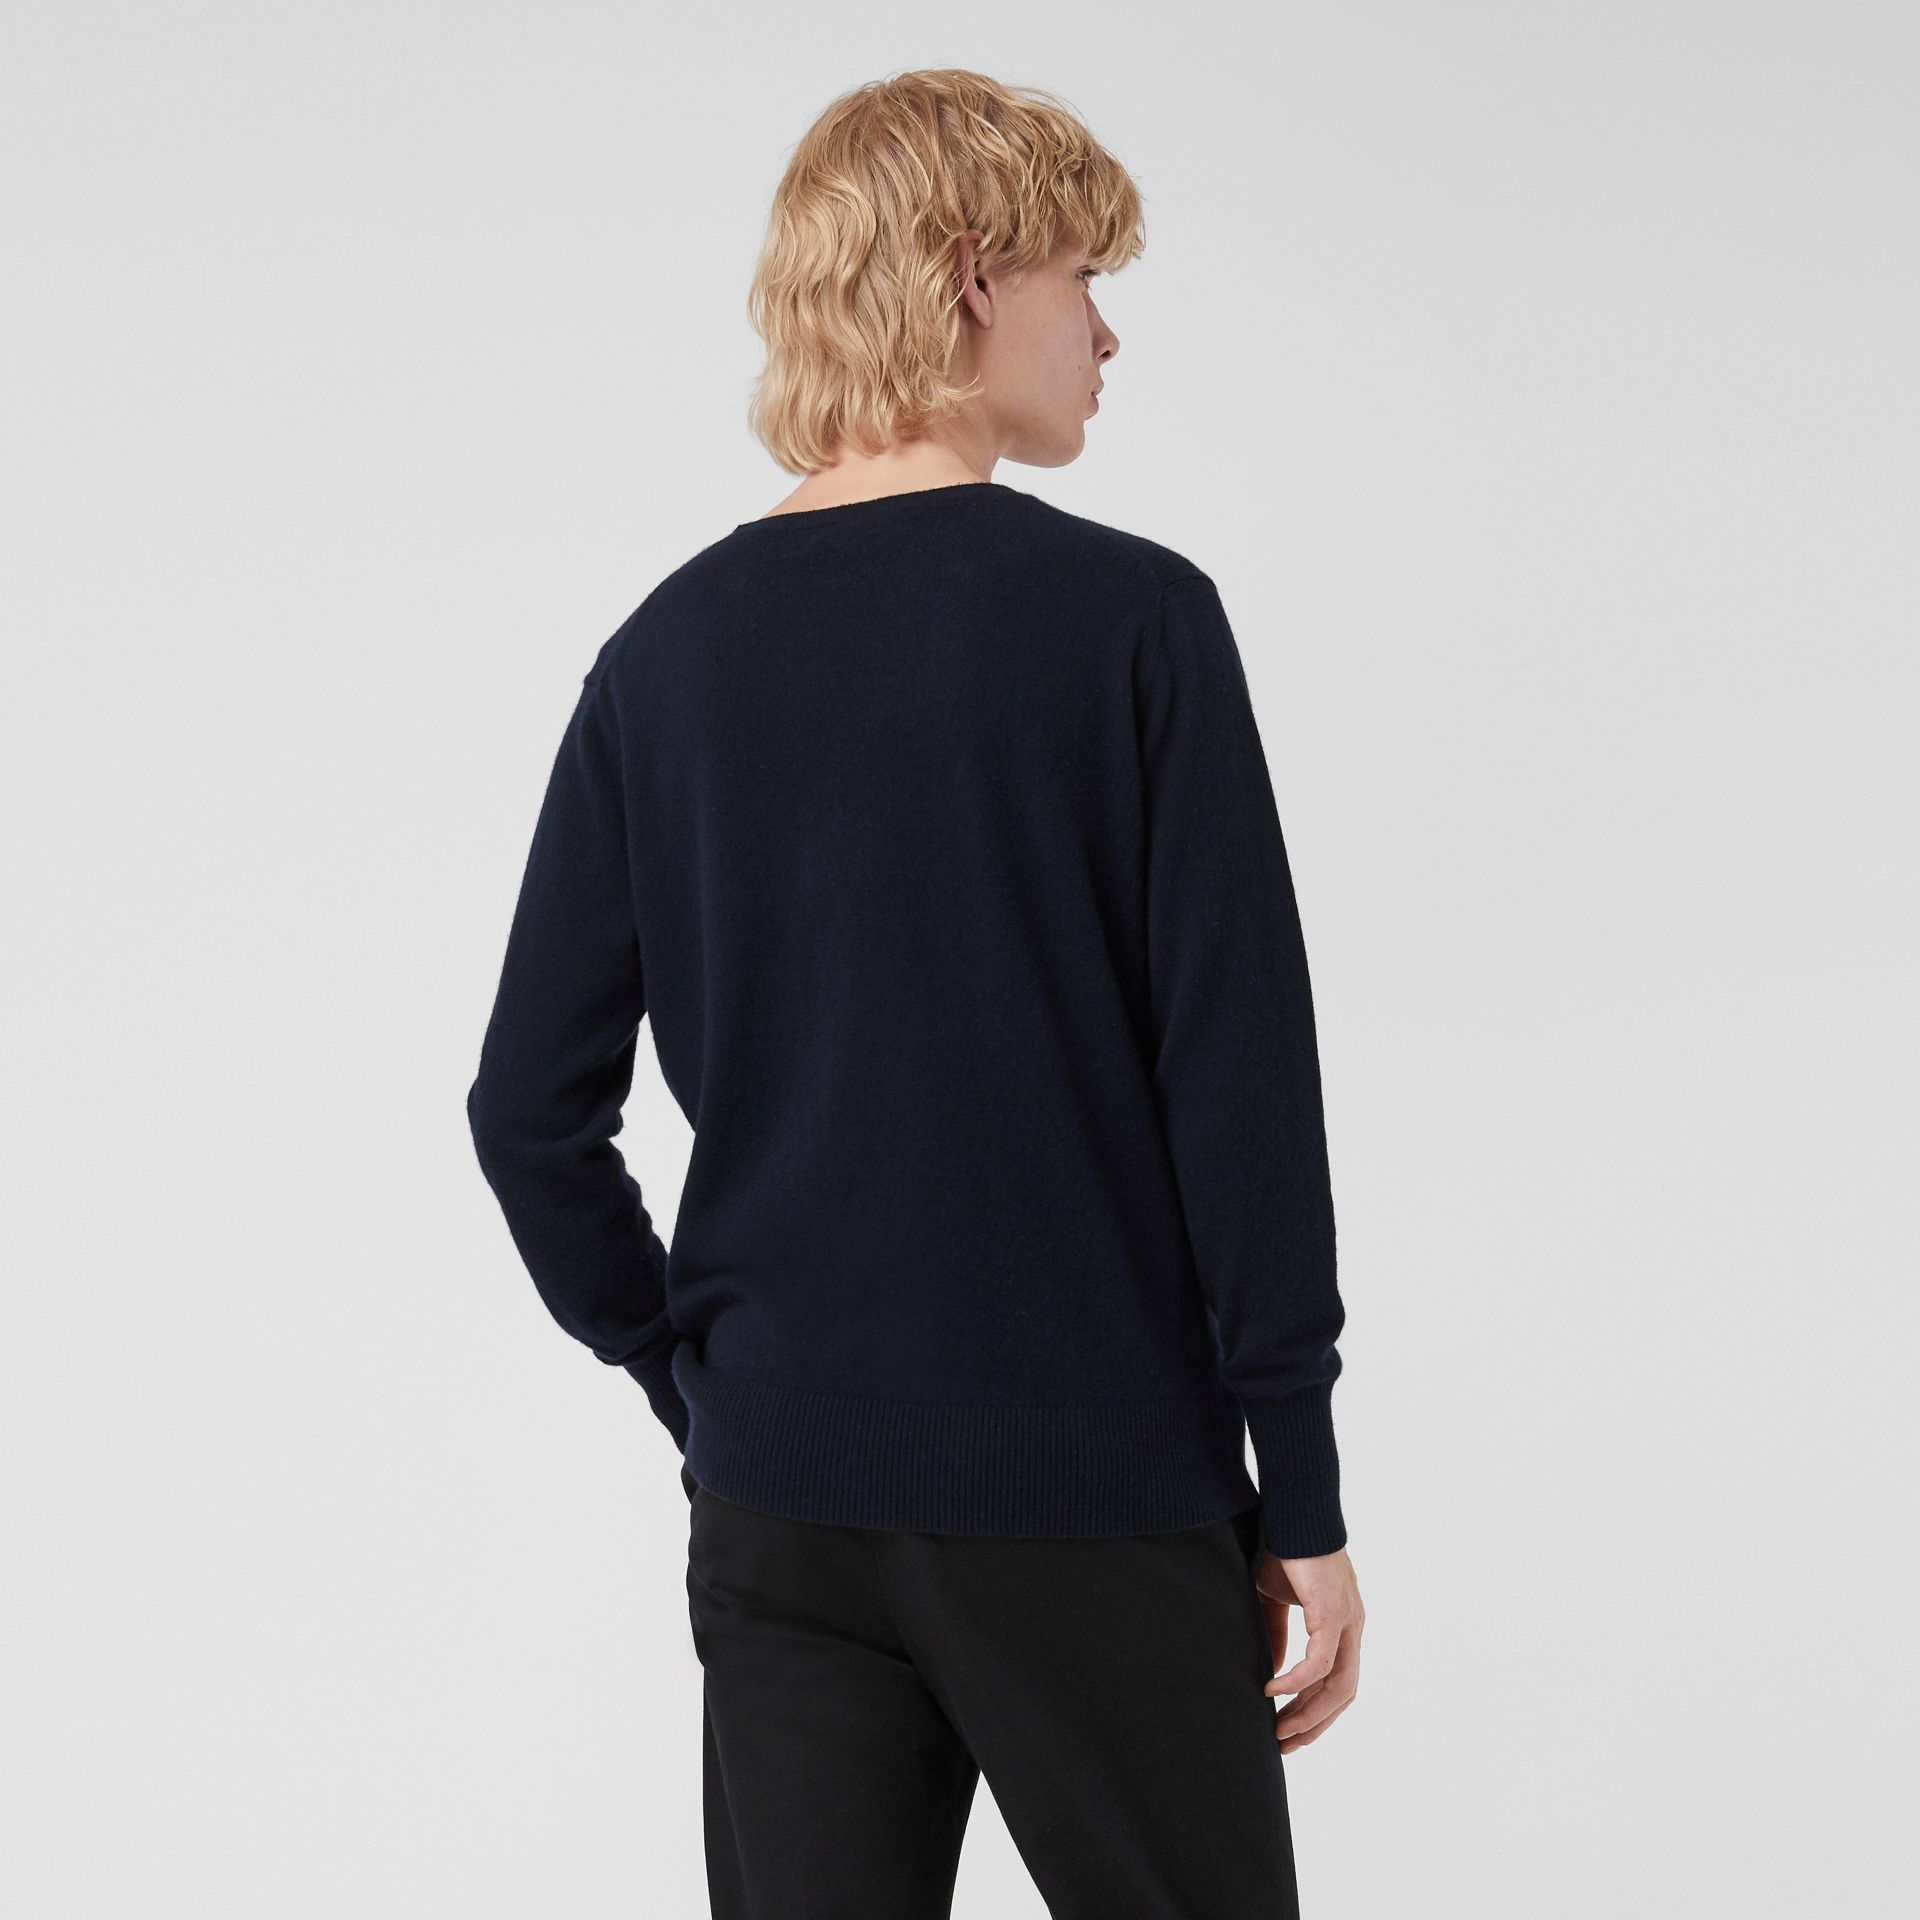 Embroidered Archive Logo Cashmere Sweater in Navy - Men | Burberry - gallery image 2